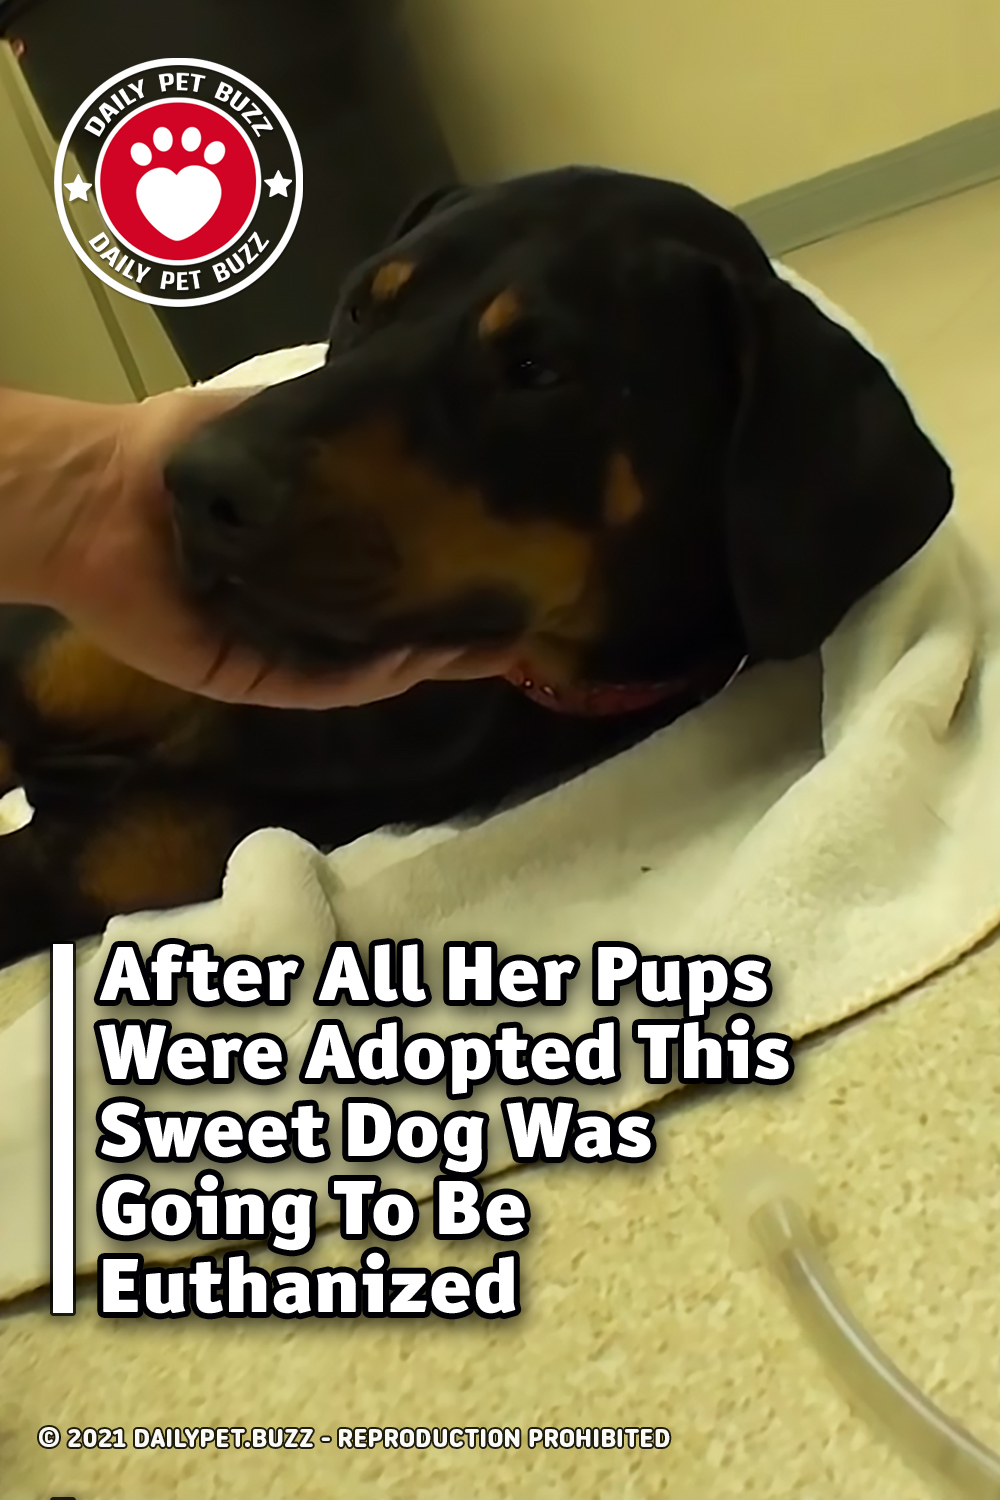 After All Her Pups Were Adopted This Sweet Dog Was Going To Be Euthanized